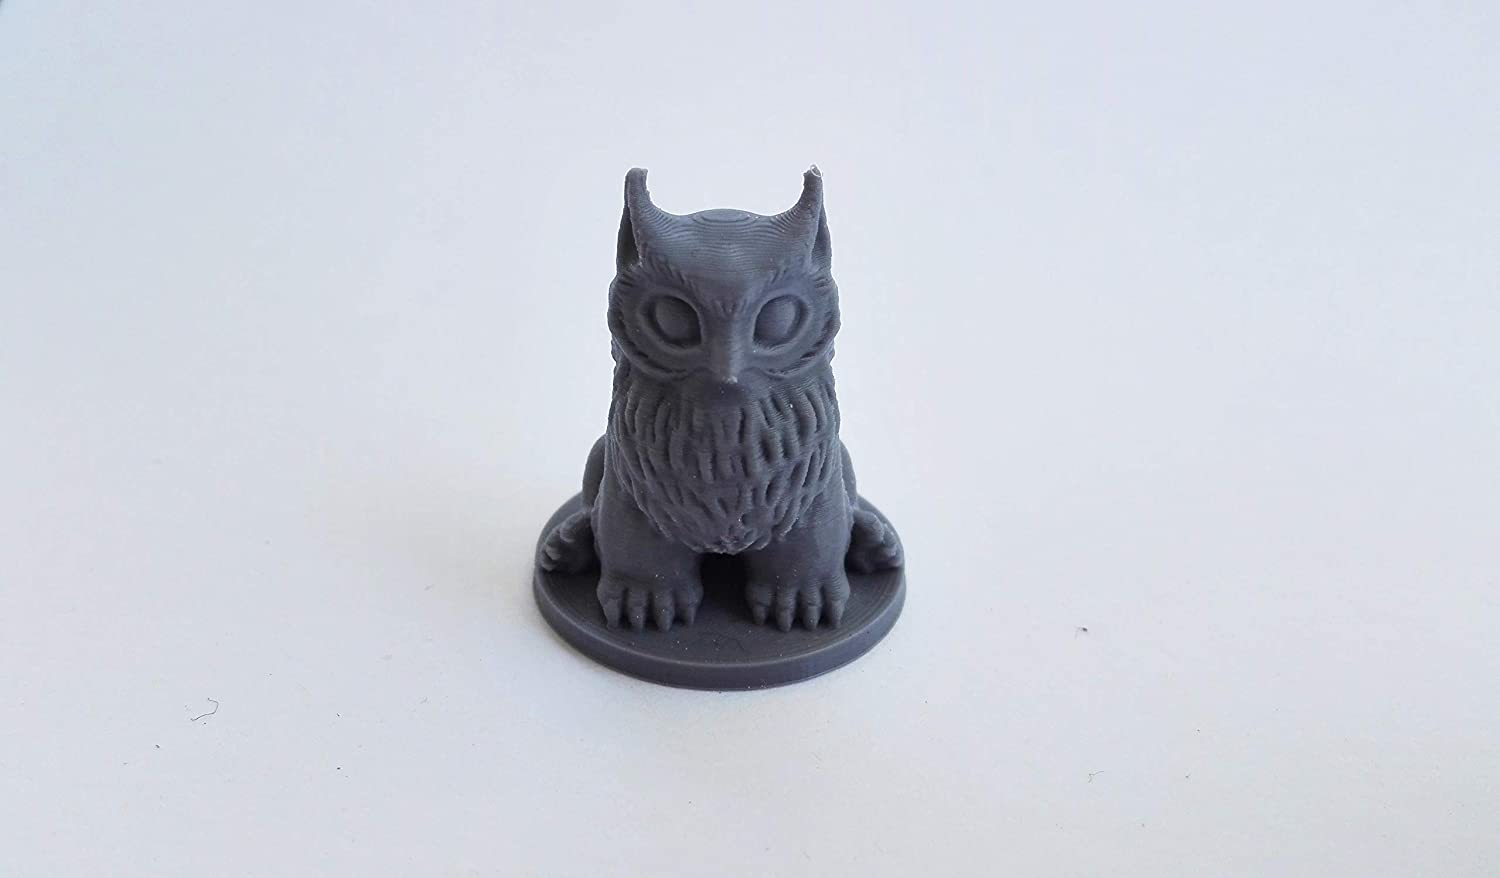 Baby Owlbear DnD Dungeons and Dragons Tabletop Minature 3D-Printed 12 Colors